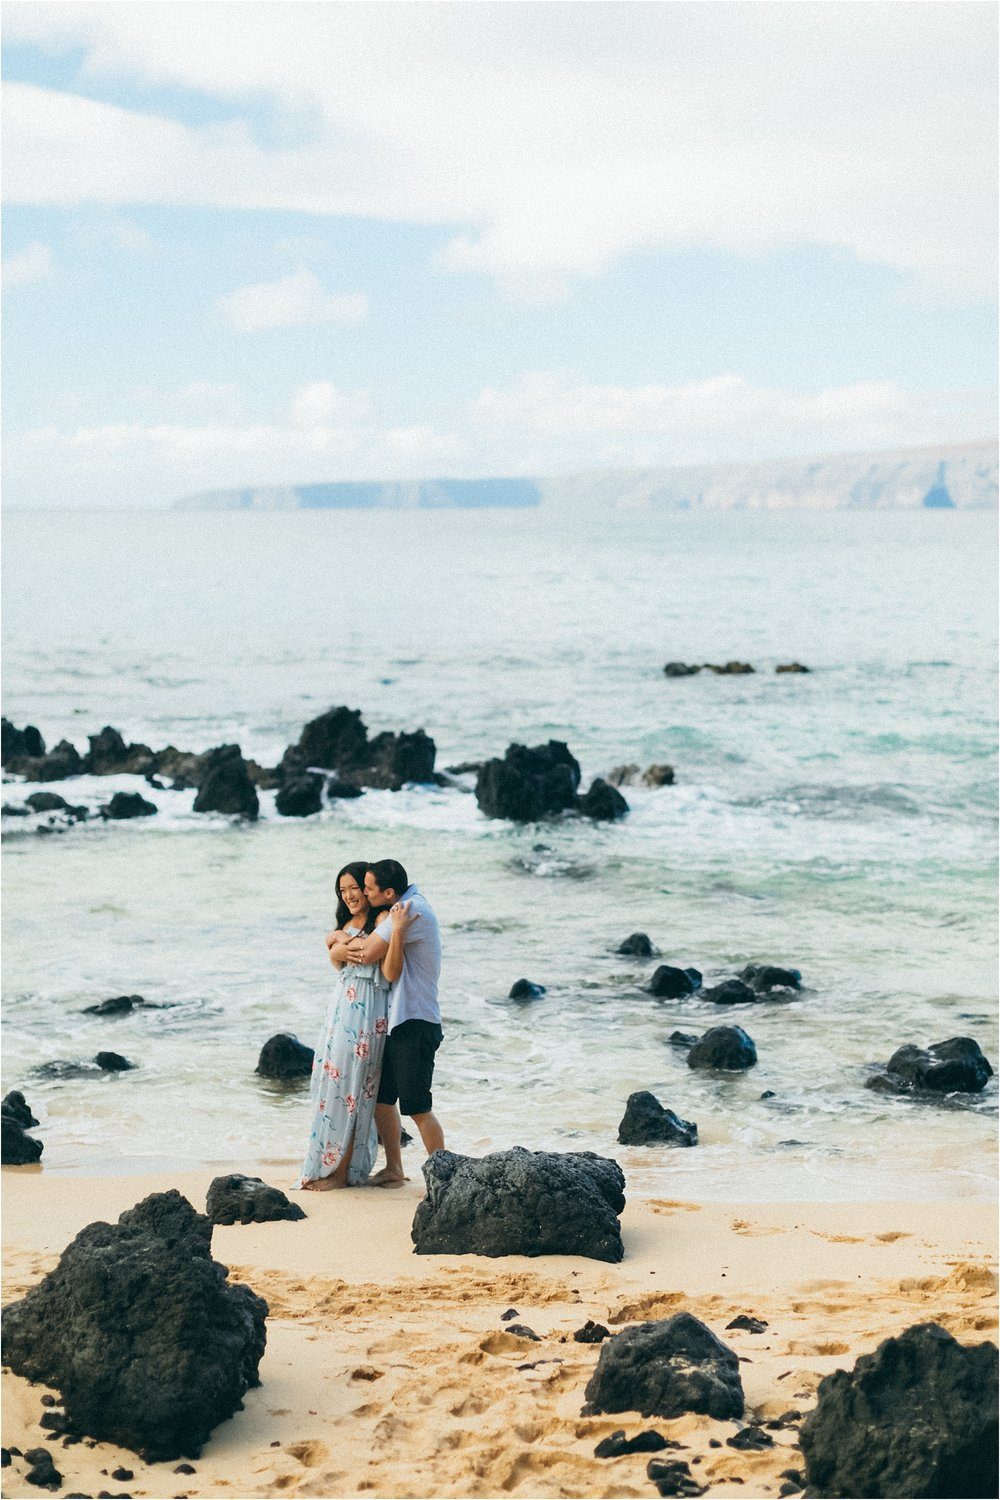 angie-diaz-photography-maui-hawaii-engagement-wedding-photographer_0009.jpg